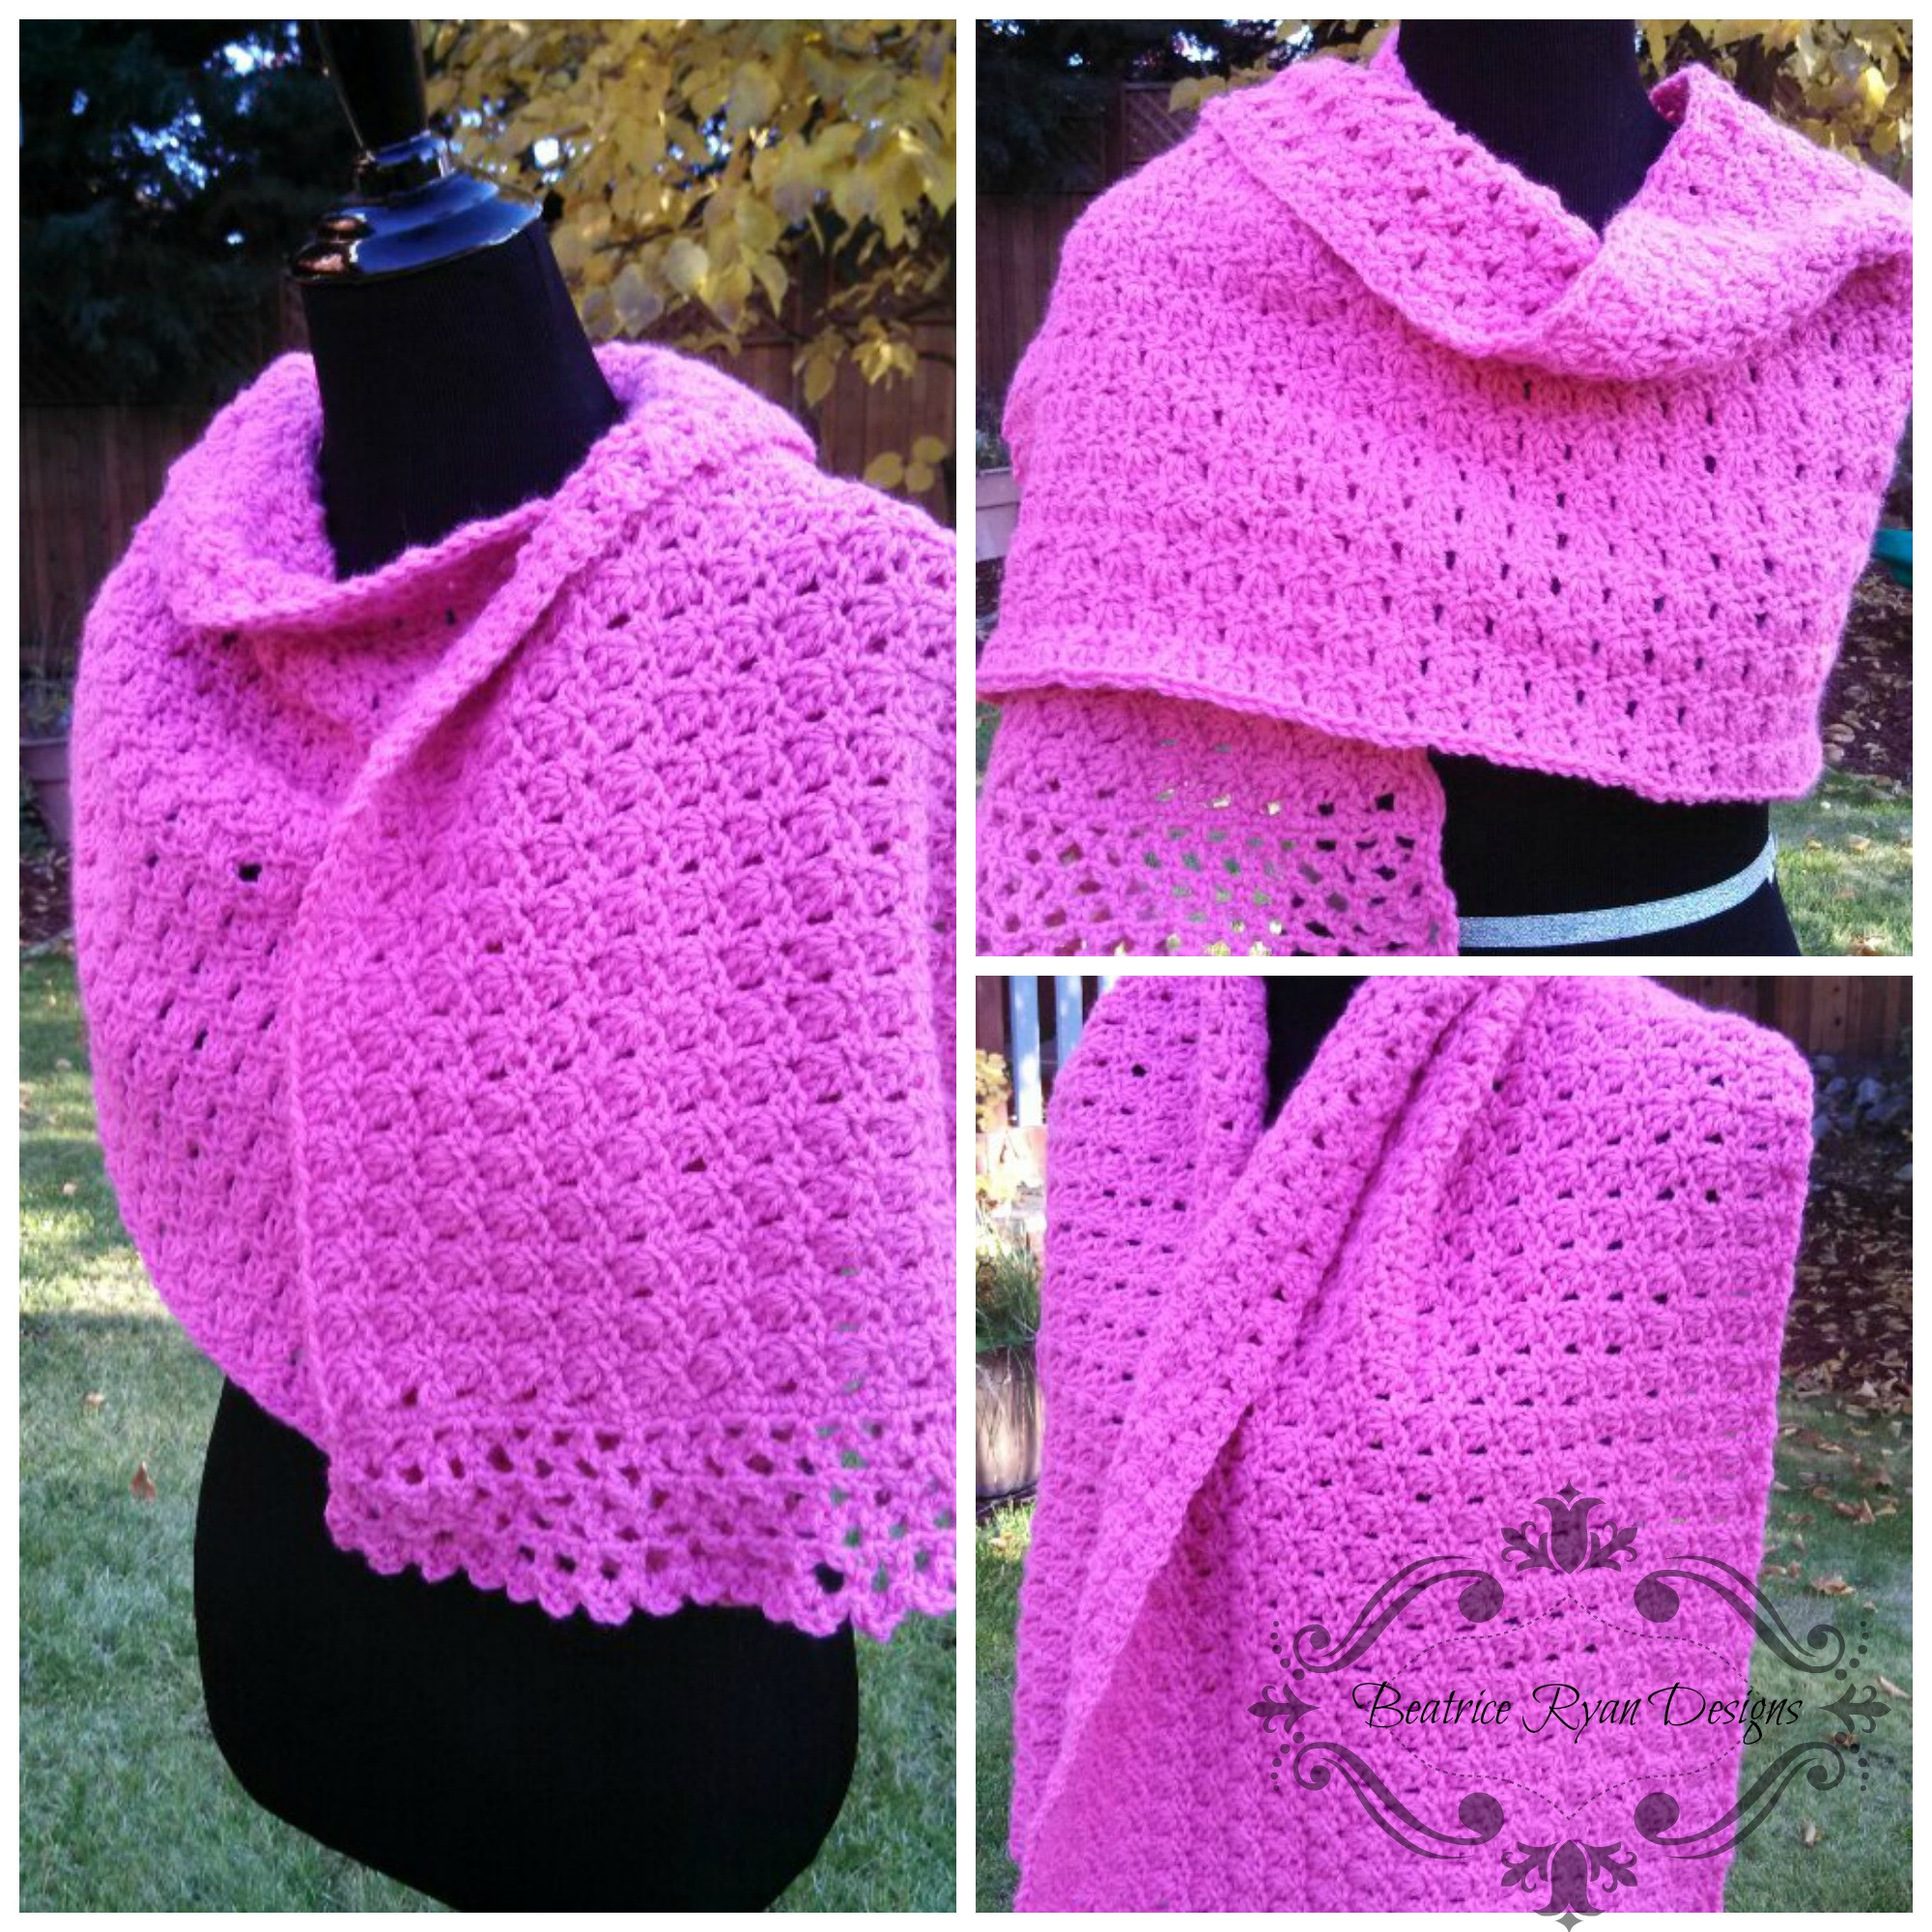 Amazing Grace Prayer Shawl Free Crochet Pattern